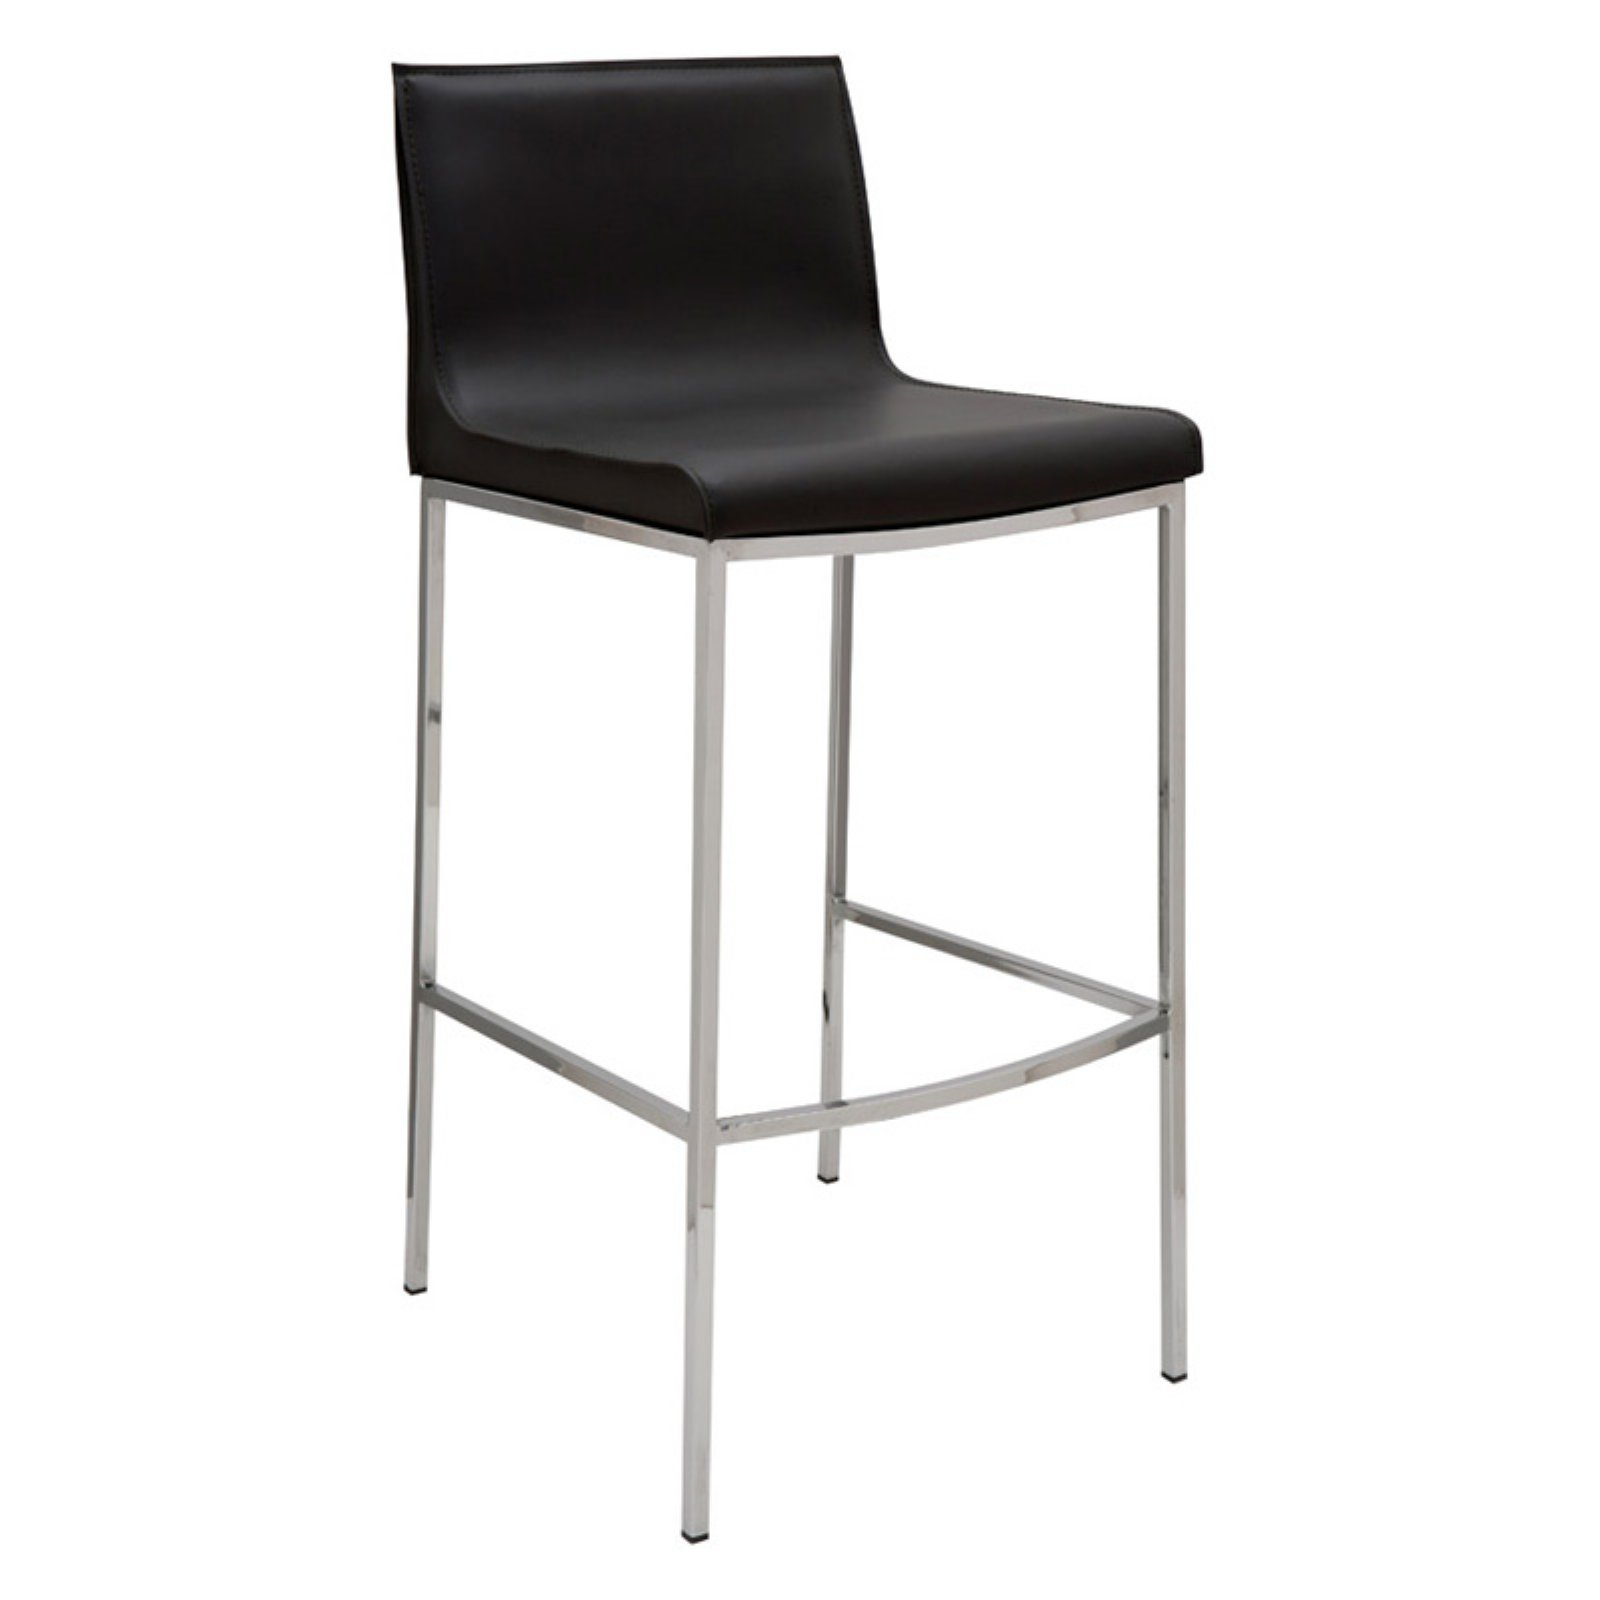 C2a Modern Trendy Counter Stool Bar Stools Leather Counter